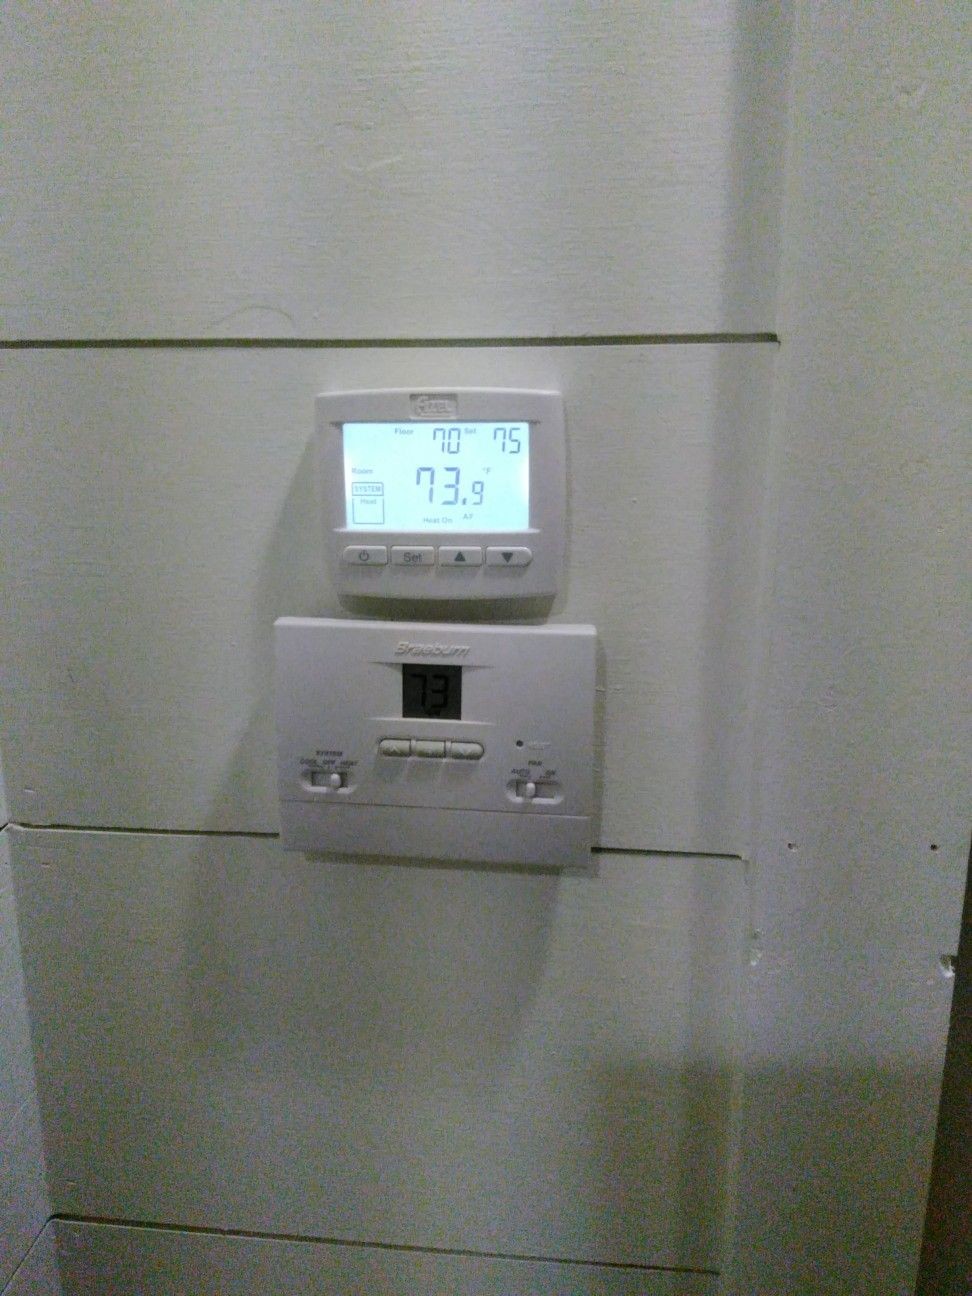 Thermostat has floor sensor (With images) | Flooring ...